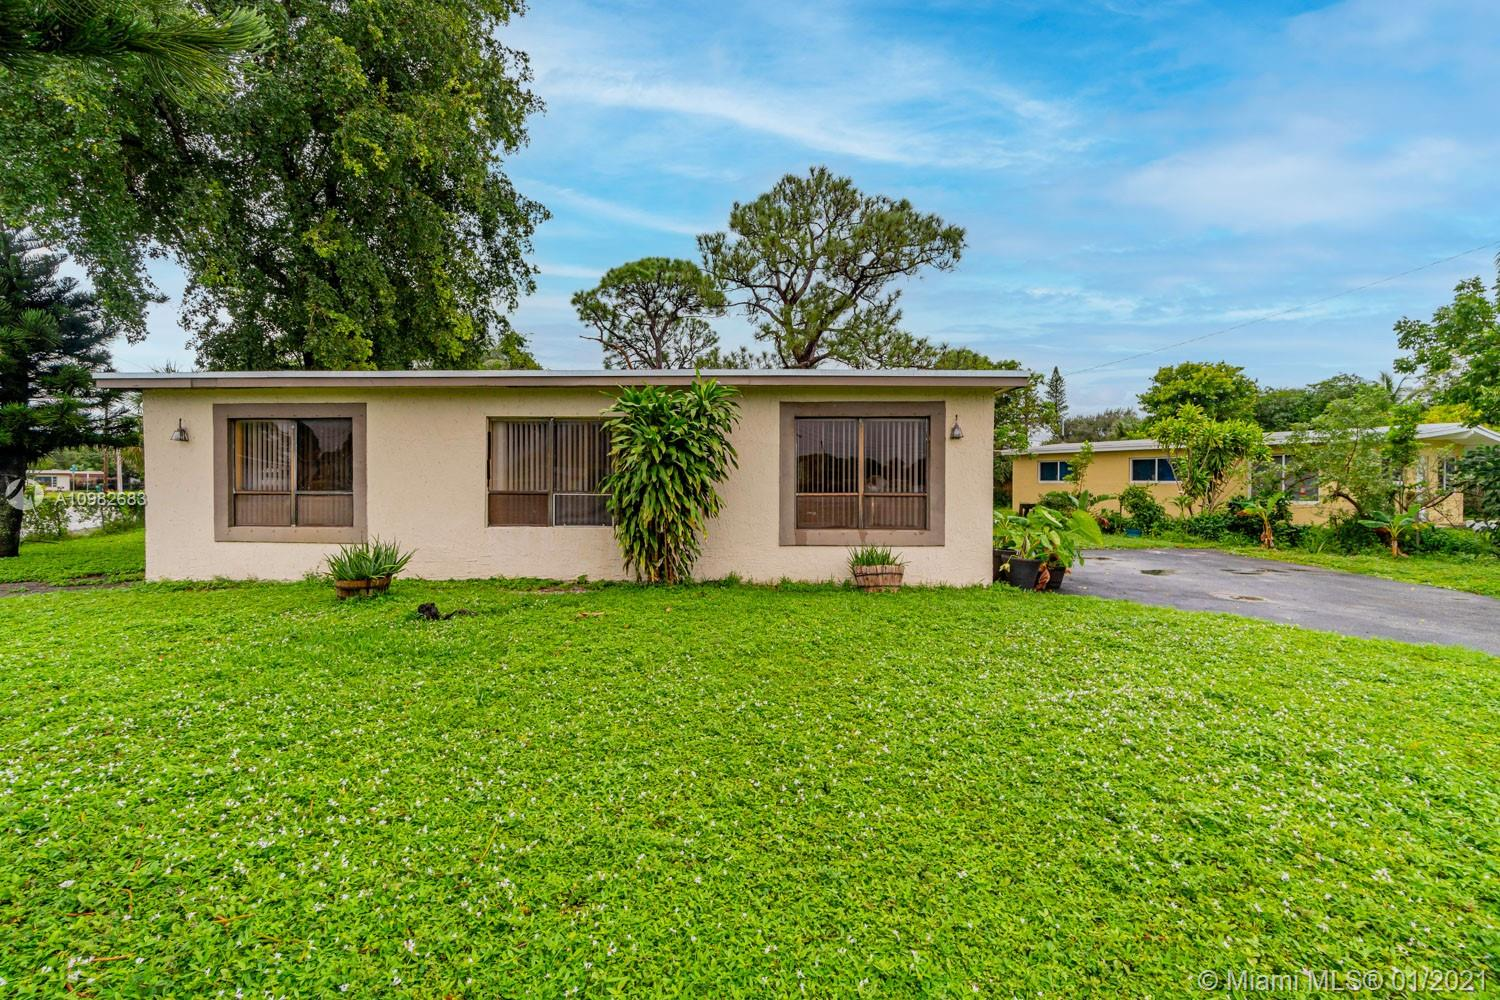 3110 NW 3rd St, Lauderhill, Florida 33311, 3 Bedrooms Bedrooms, ,2 BathroomsBathrooms,Residential,For Sale,3110 NW 3rd St,A10982683